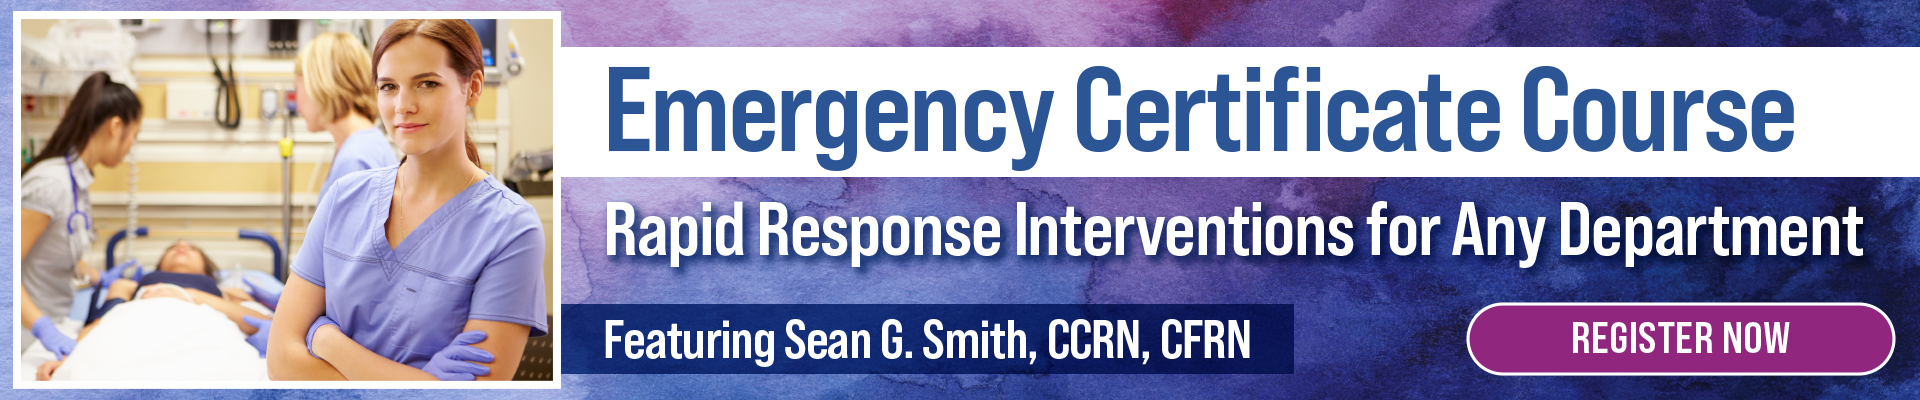 Emergency Certificate Course: Rapid Response Interventions for Any Department